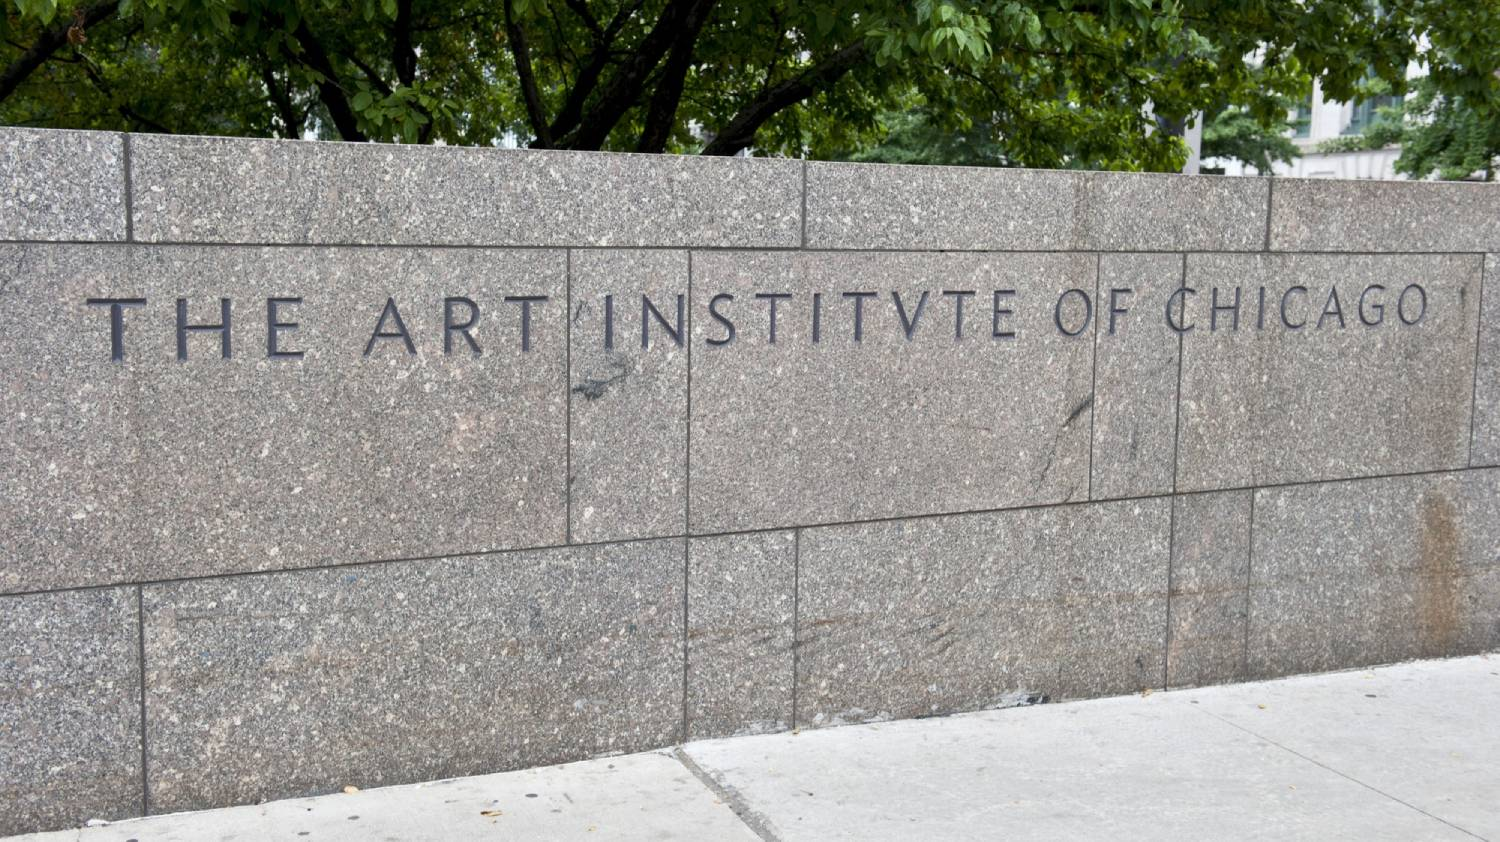 Art Institute of Chicago - Things To Do In Chicago